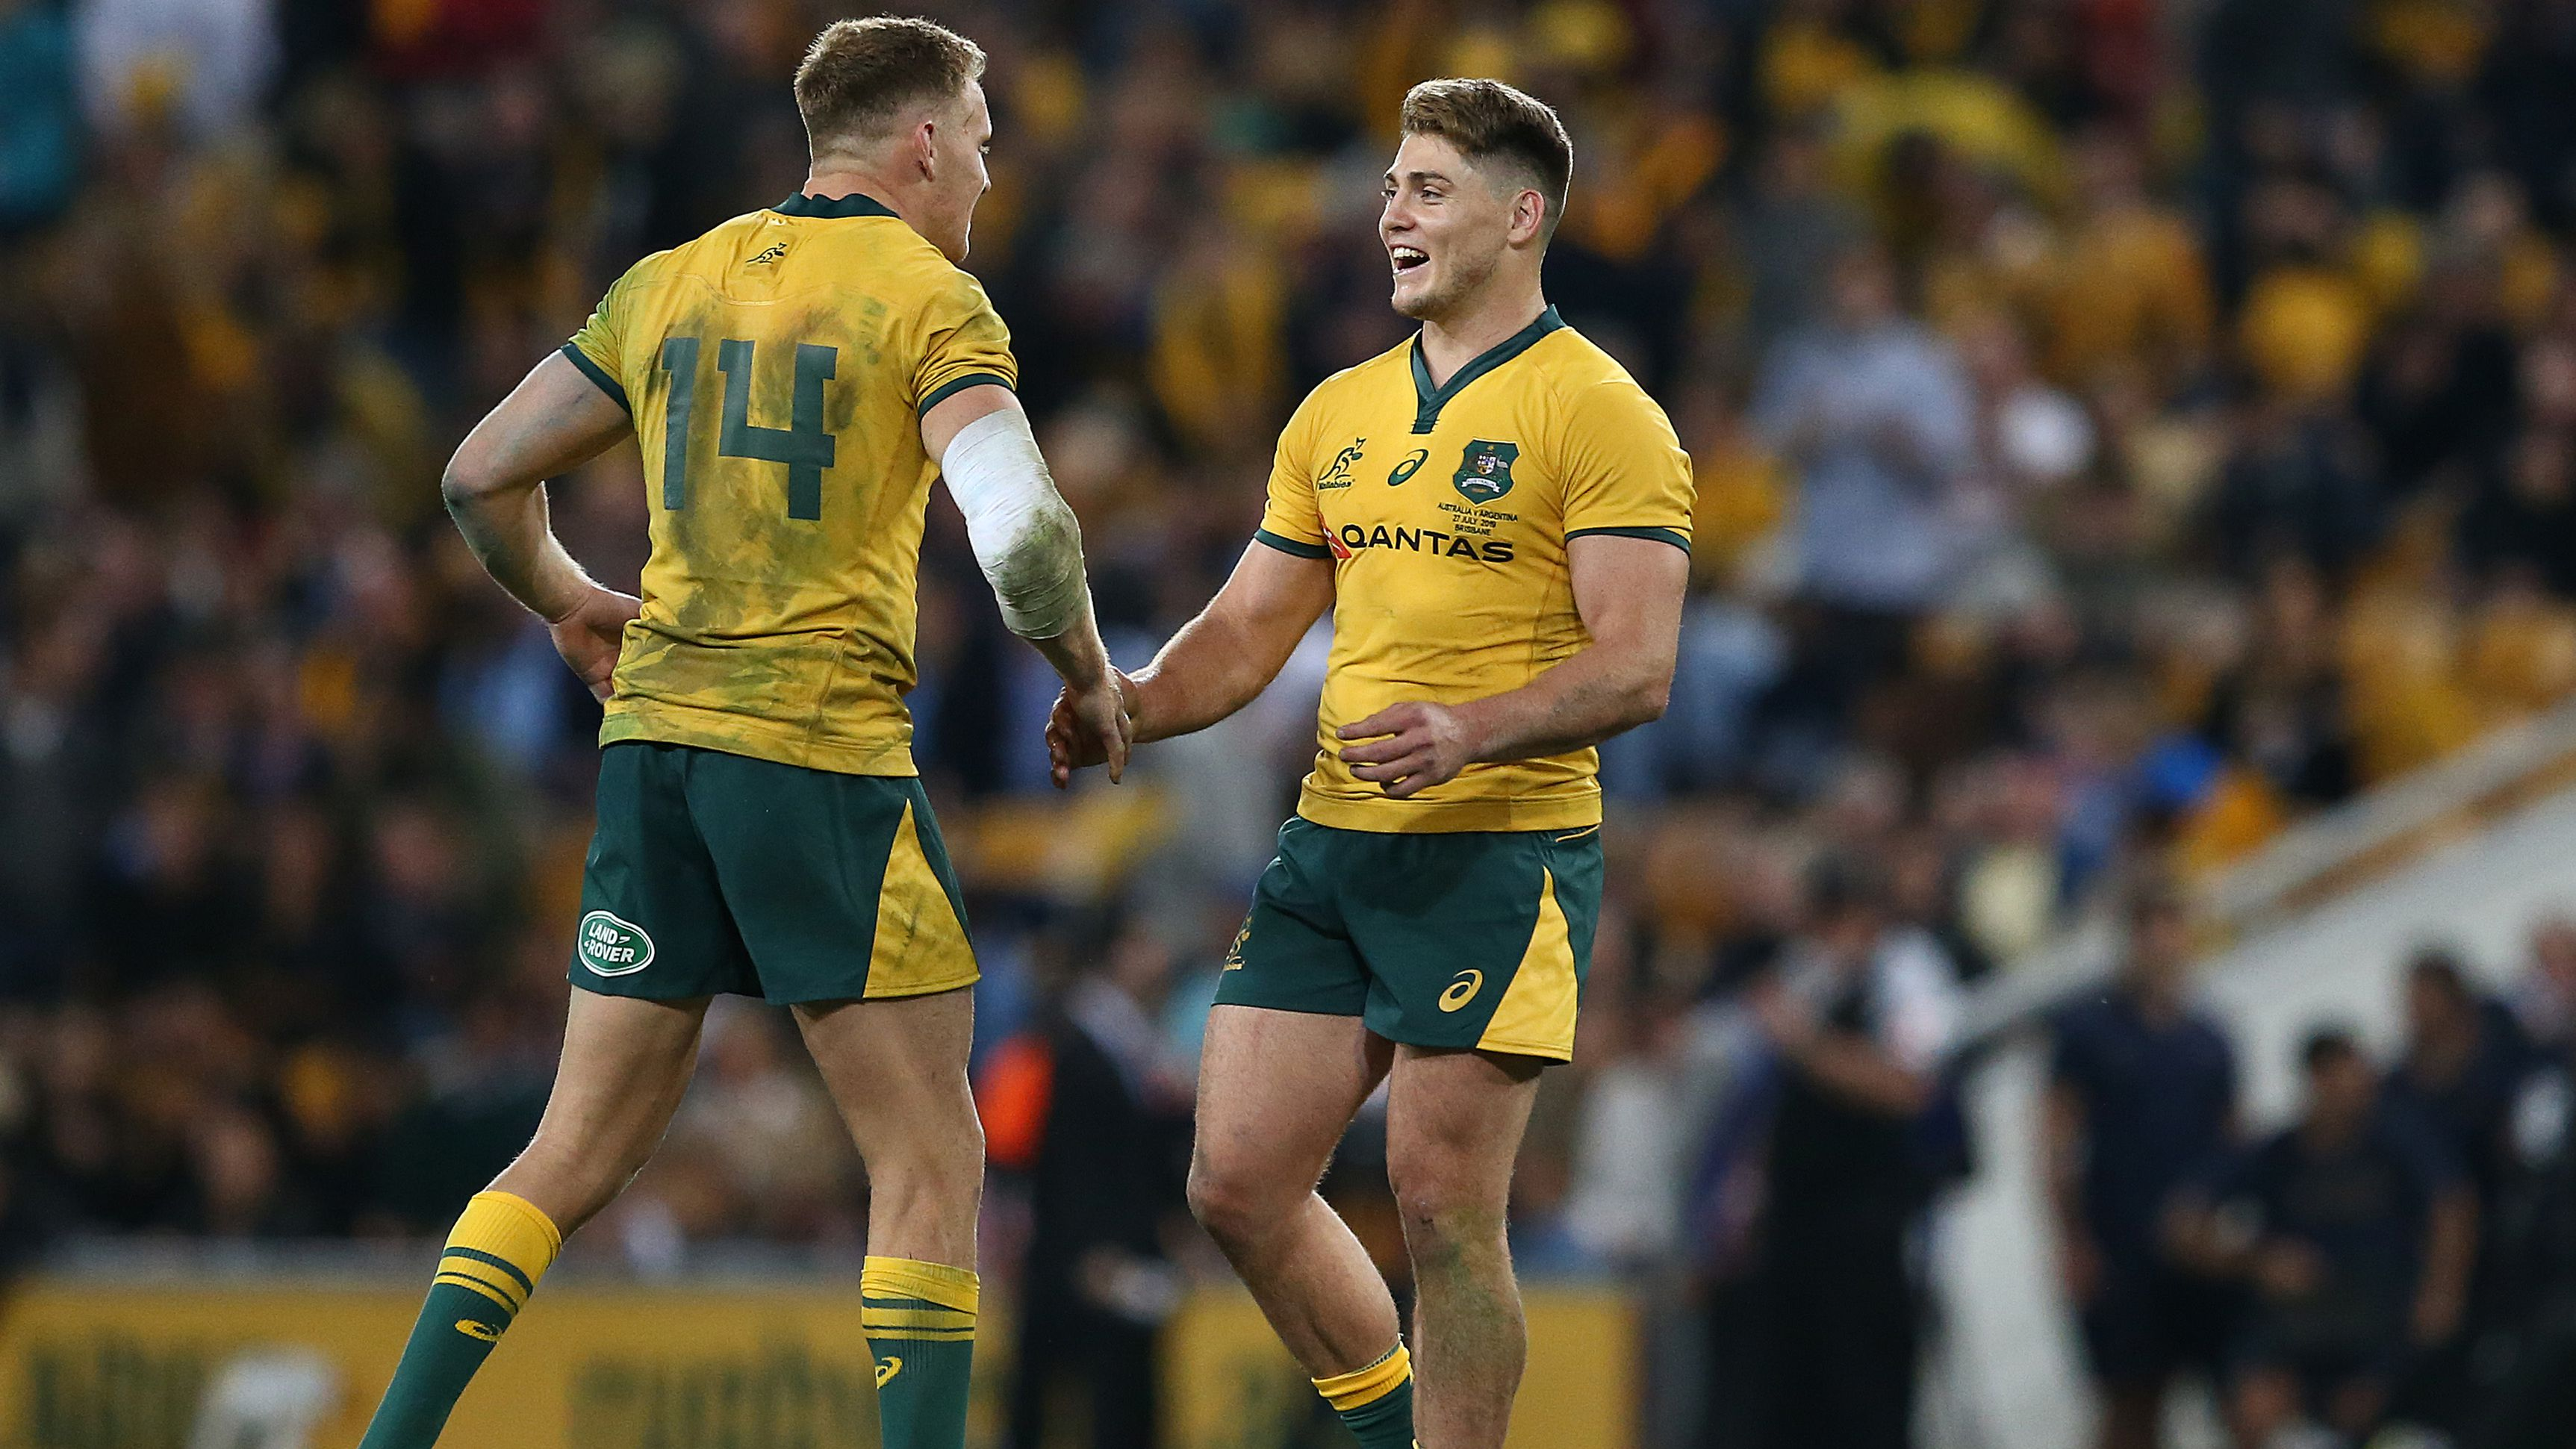 Wallabies team to play Argentina: James O'Connor returns at 10, Reece Hodge switched to fullback